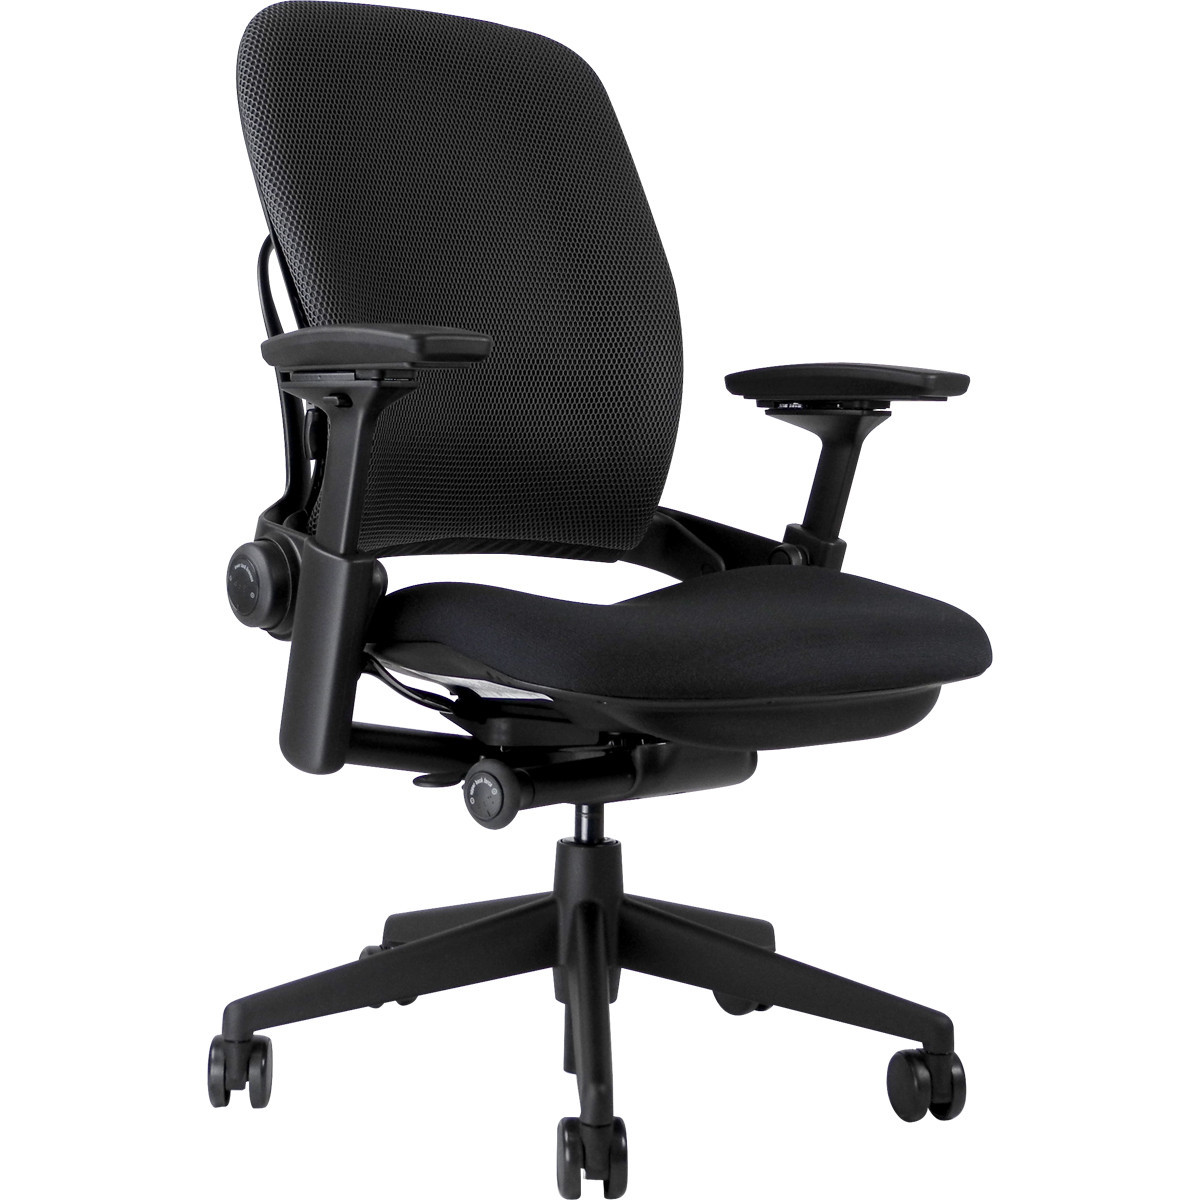 Steelcase Leap Chair Ergonomic Chair Pro